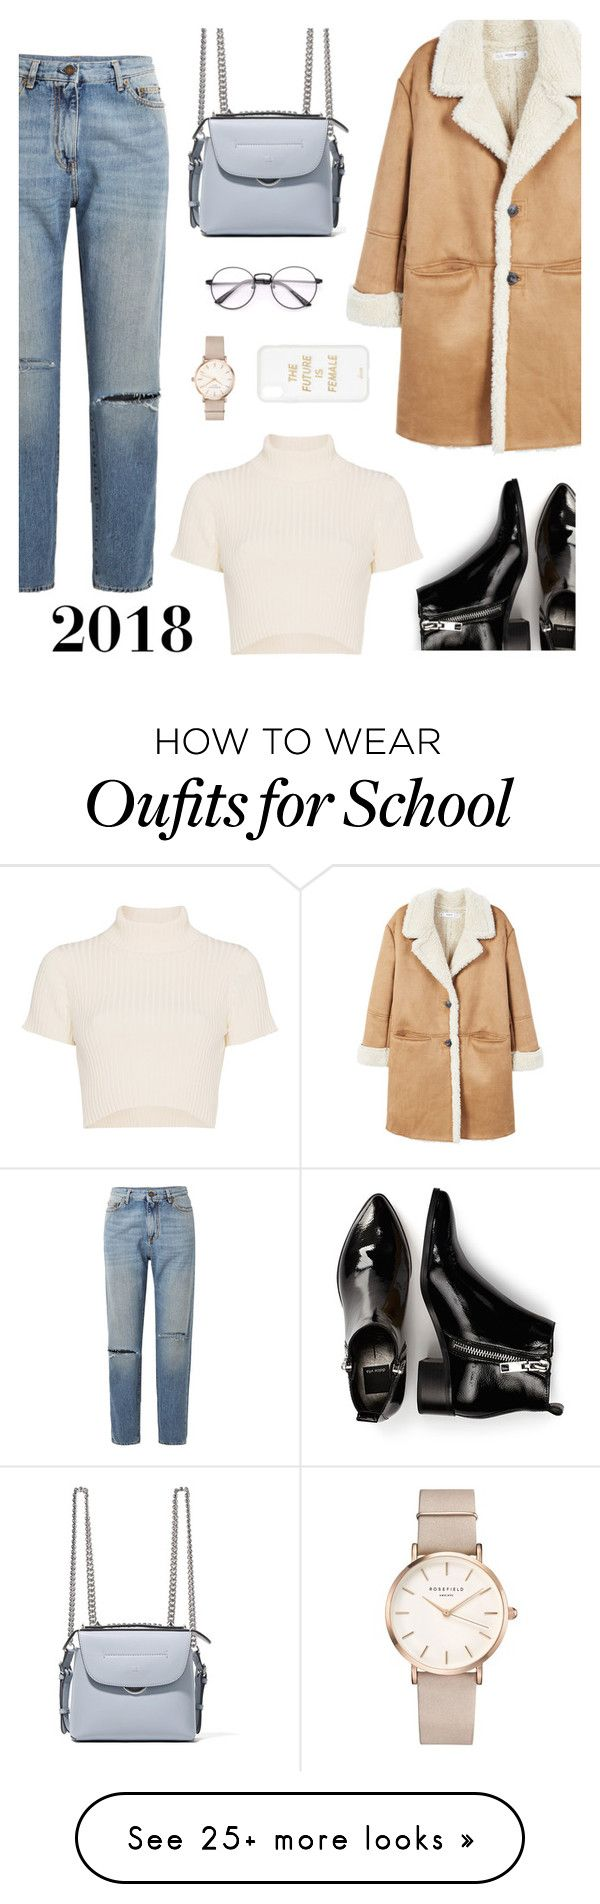 """""""Best Wishes for 2018, may all your dreams come true """" by fabulusvogue on Polyvore featuring MANGO, Yves Saint Laurent, Dolce Vita, Staud, Fendi, ROSEFIELD and Sonix"""